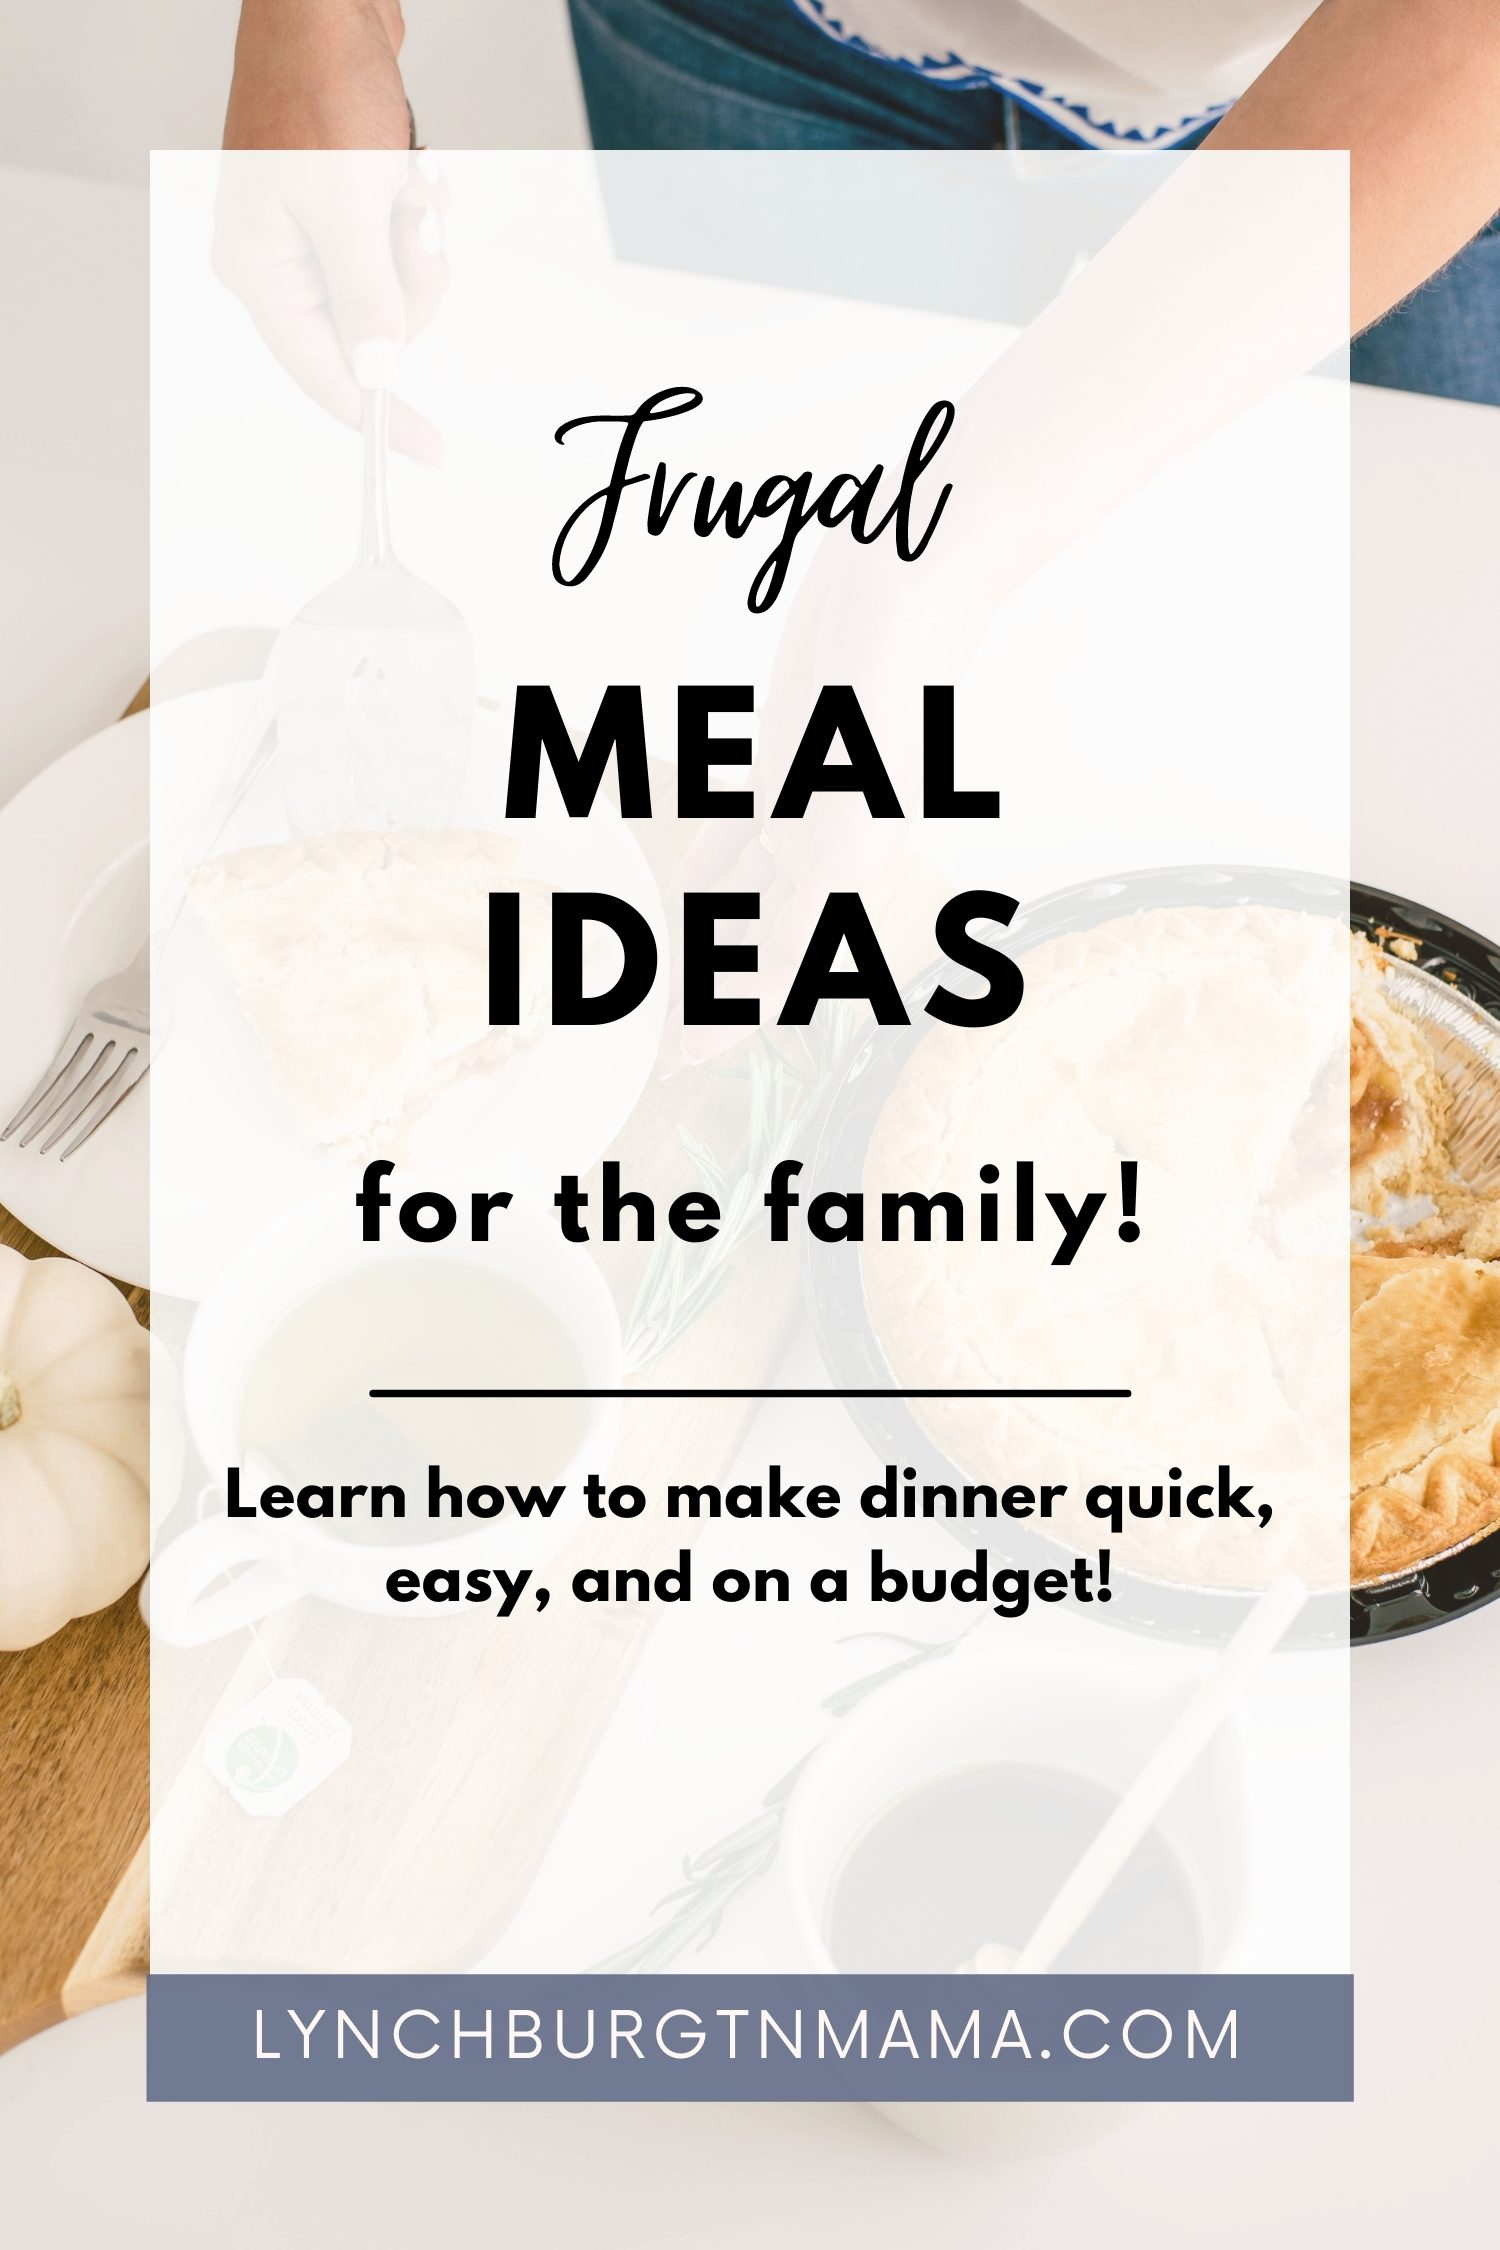 Frugal meal ideas are always important to have on hand. Do you have a family to feed with a smaller food budget? It is entirely possible to feed your family filling, healthy, and affordable meals no matter what your budget is. Here are some frugal meal ideas for your family to try!